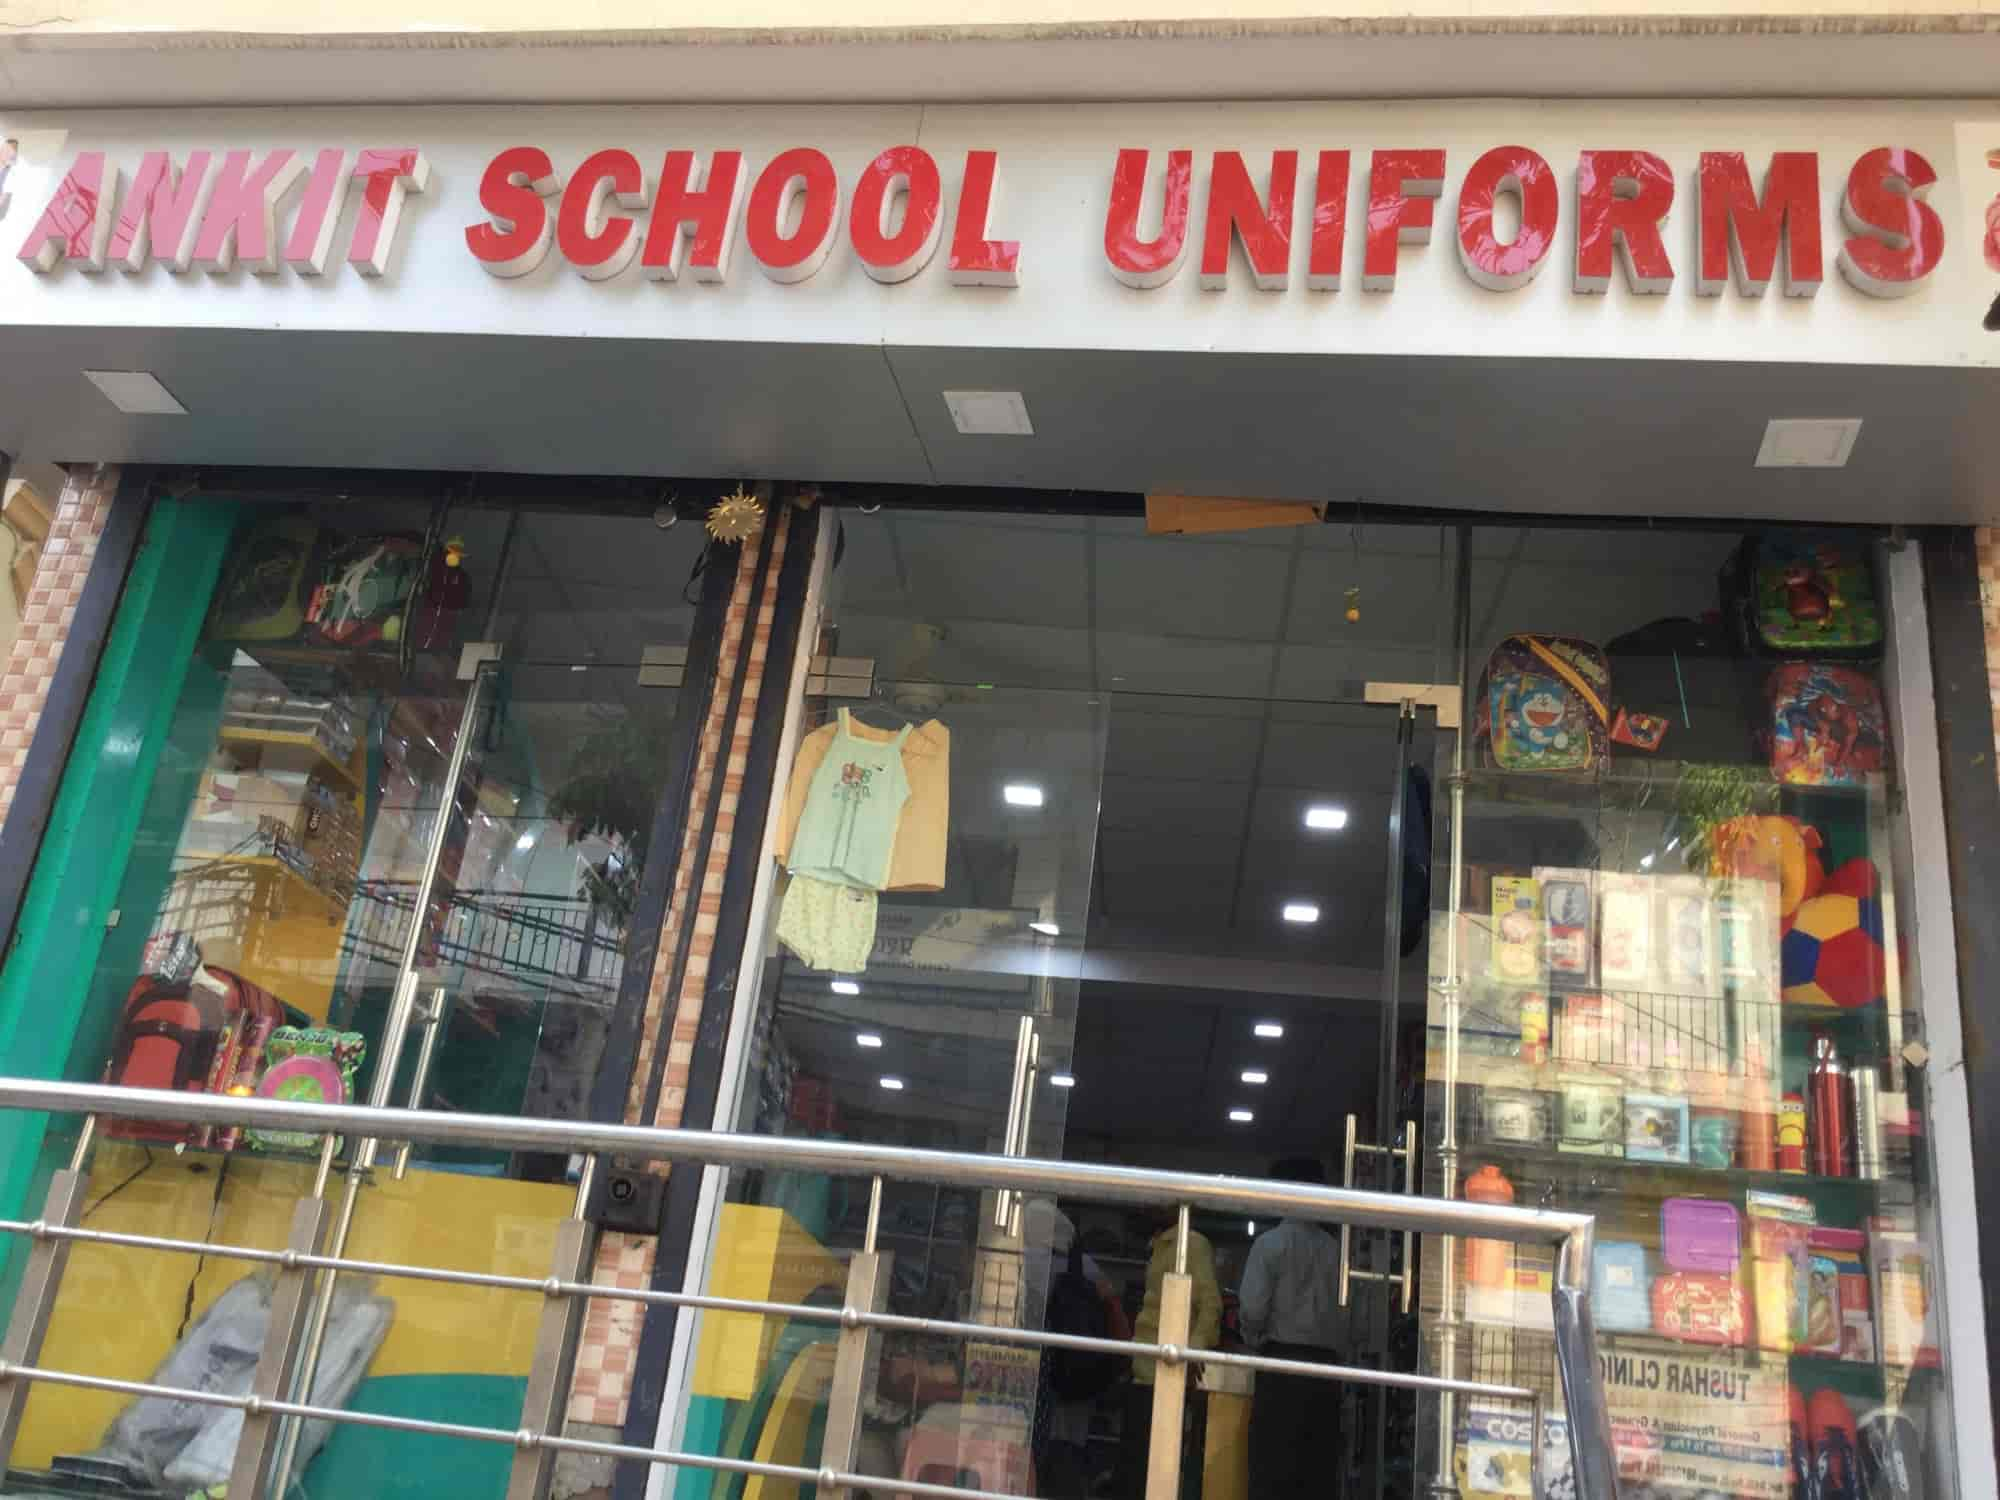 79c12d5e947 Front View of School Uniform Shop - Ankit School Uniform Photos